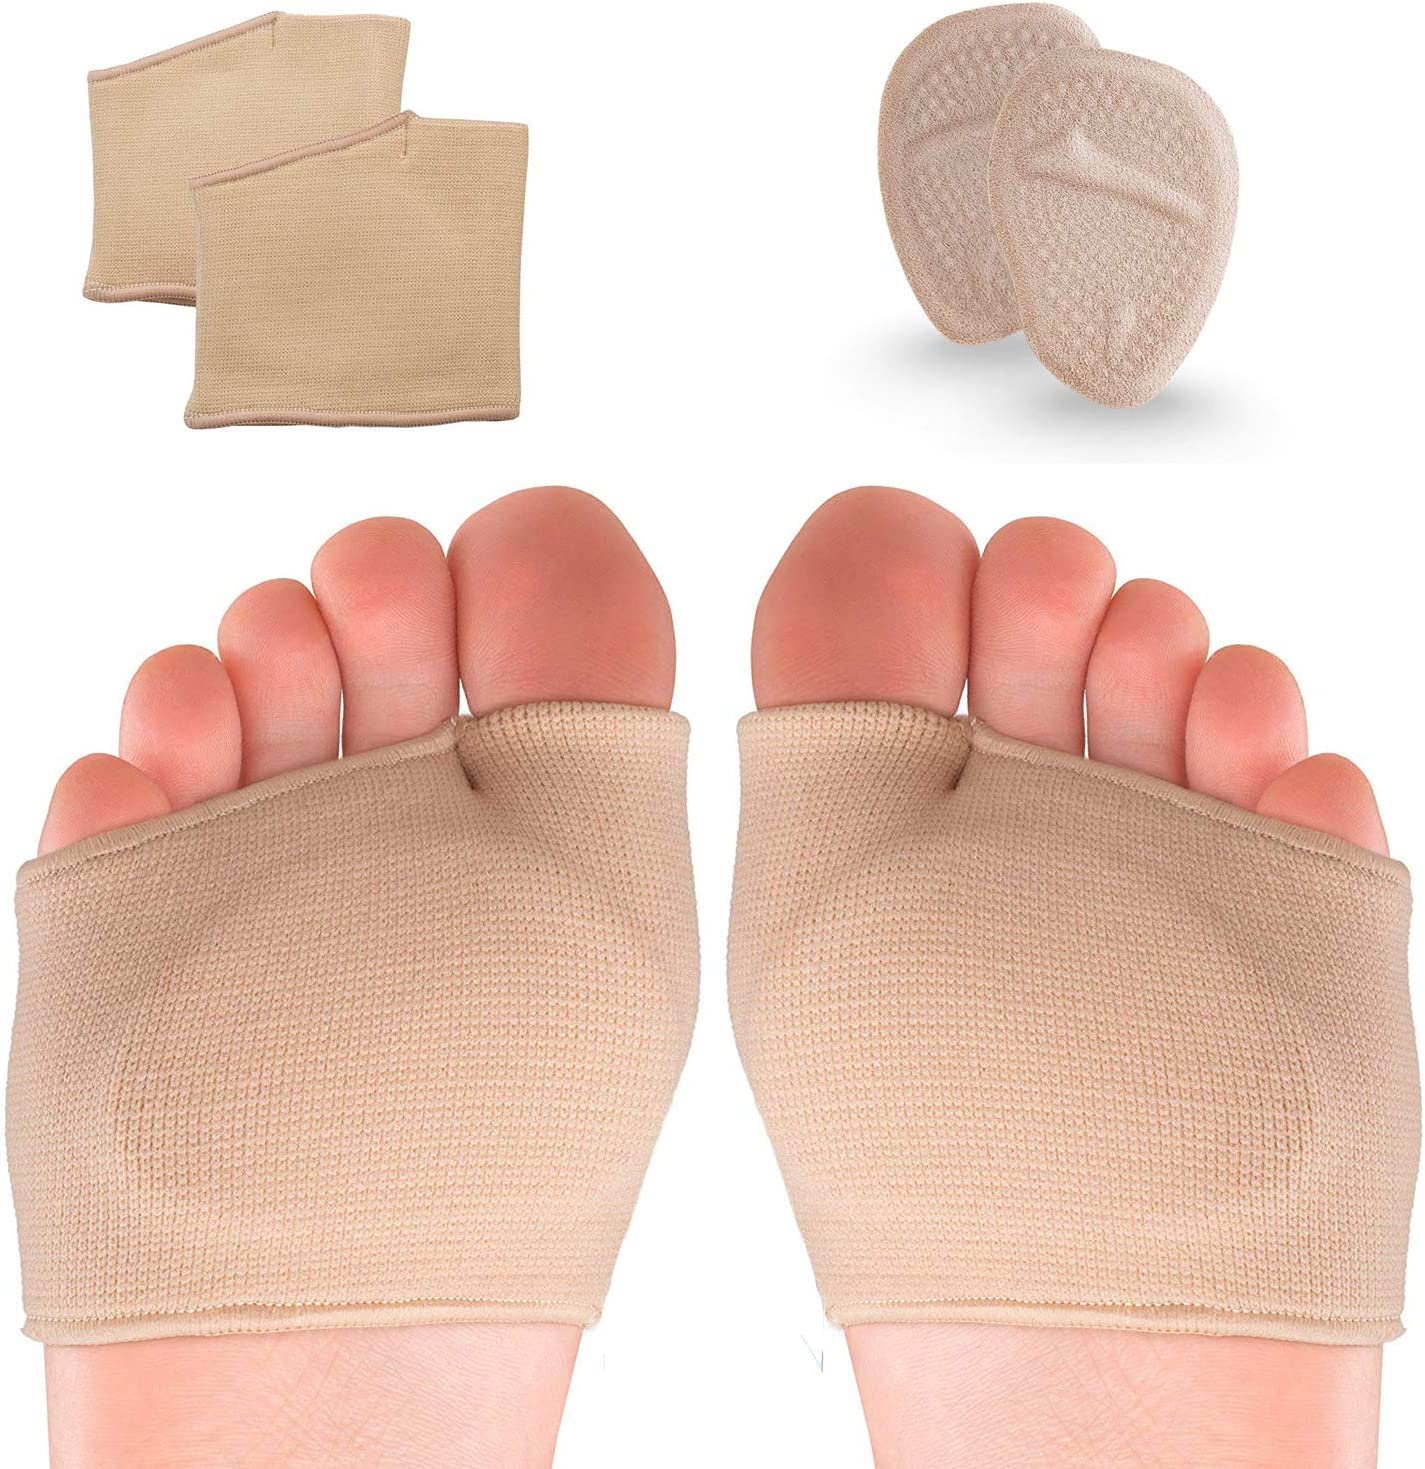 Metatarsal Pads, Ball of Foot Cushions, Soft Gel Foot Pads for Foot Instant Pain Relief